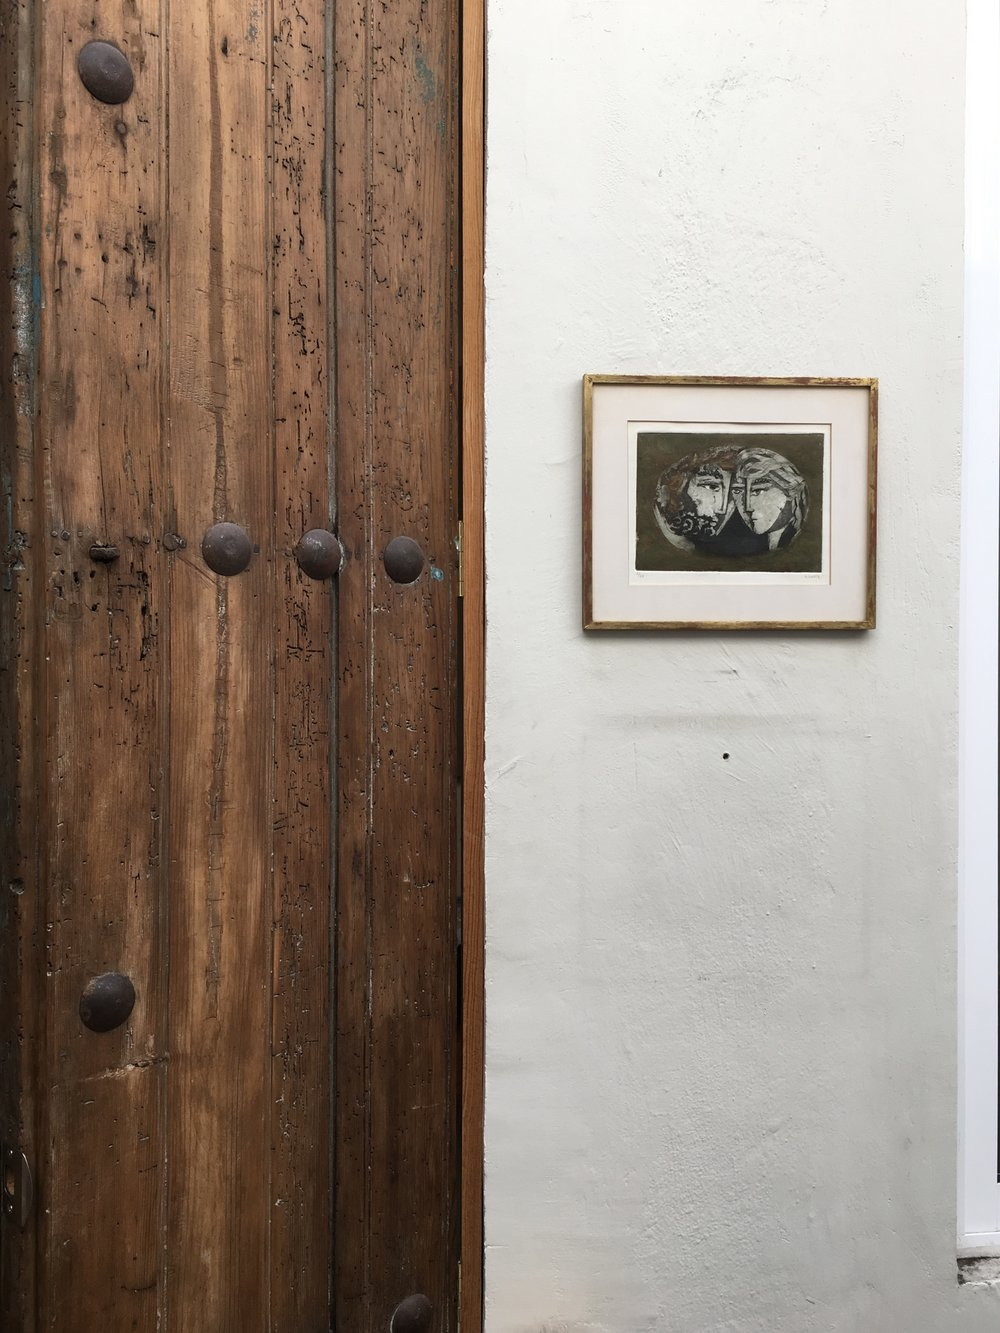 The homeowner used reclaimed building materials like these old doors.